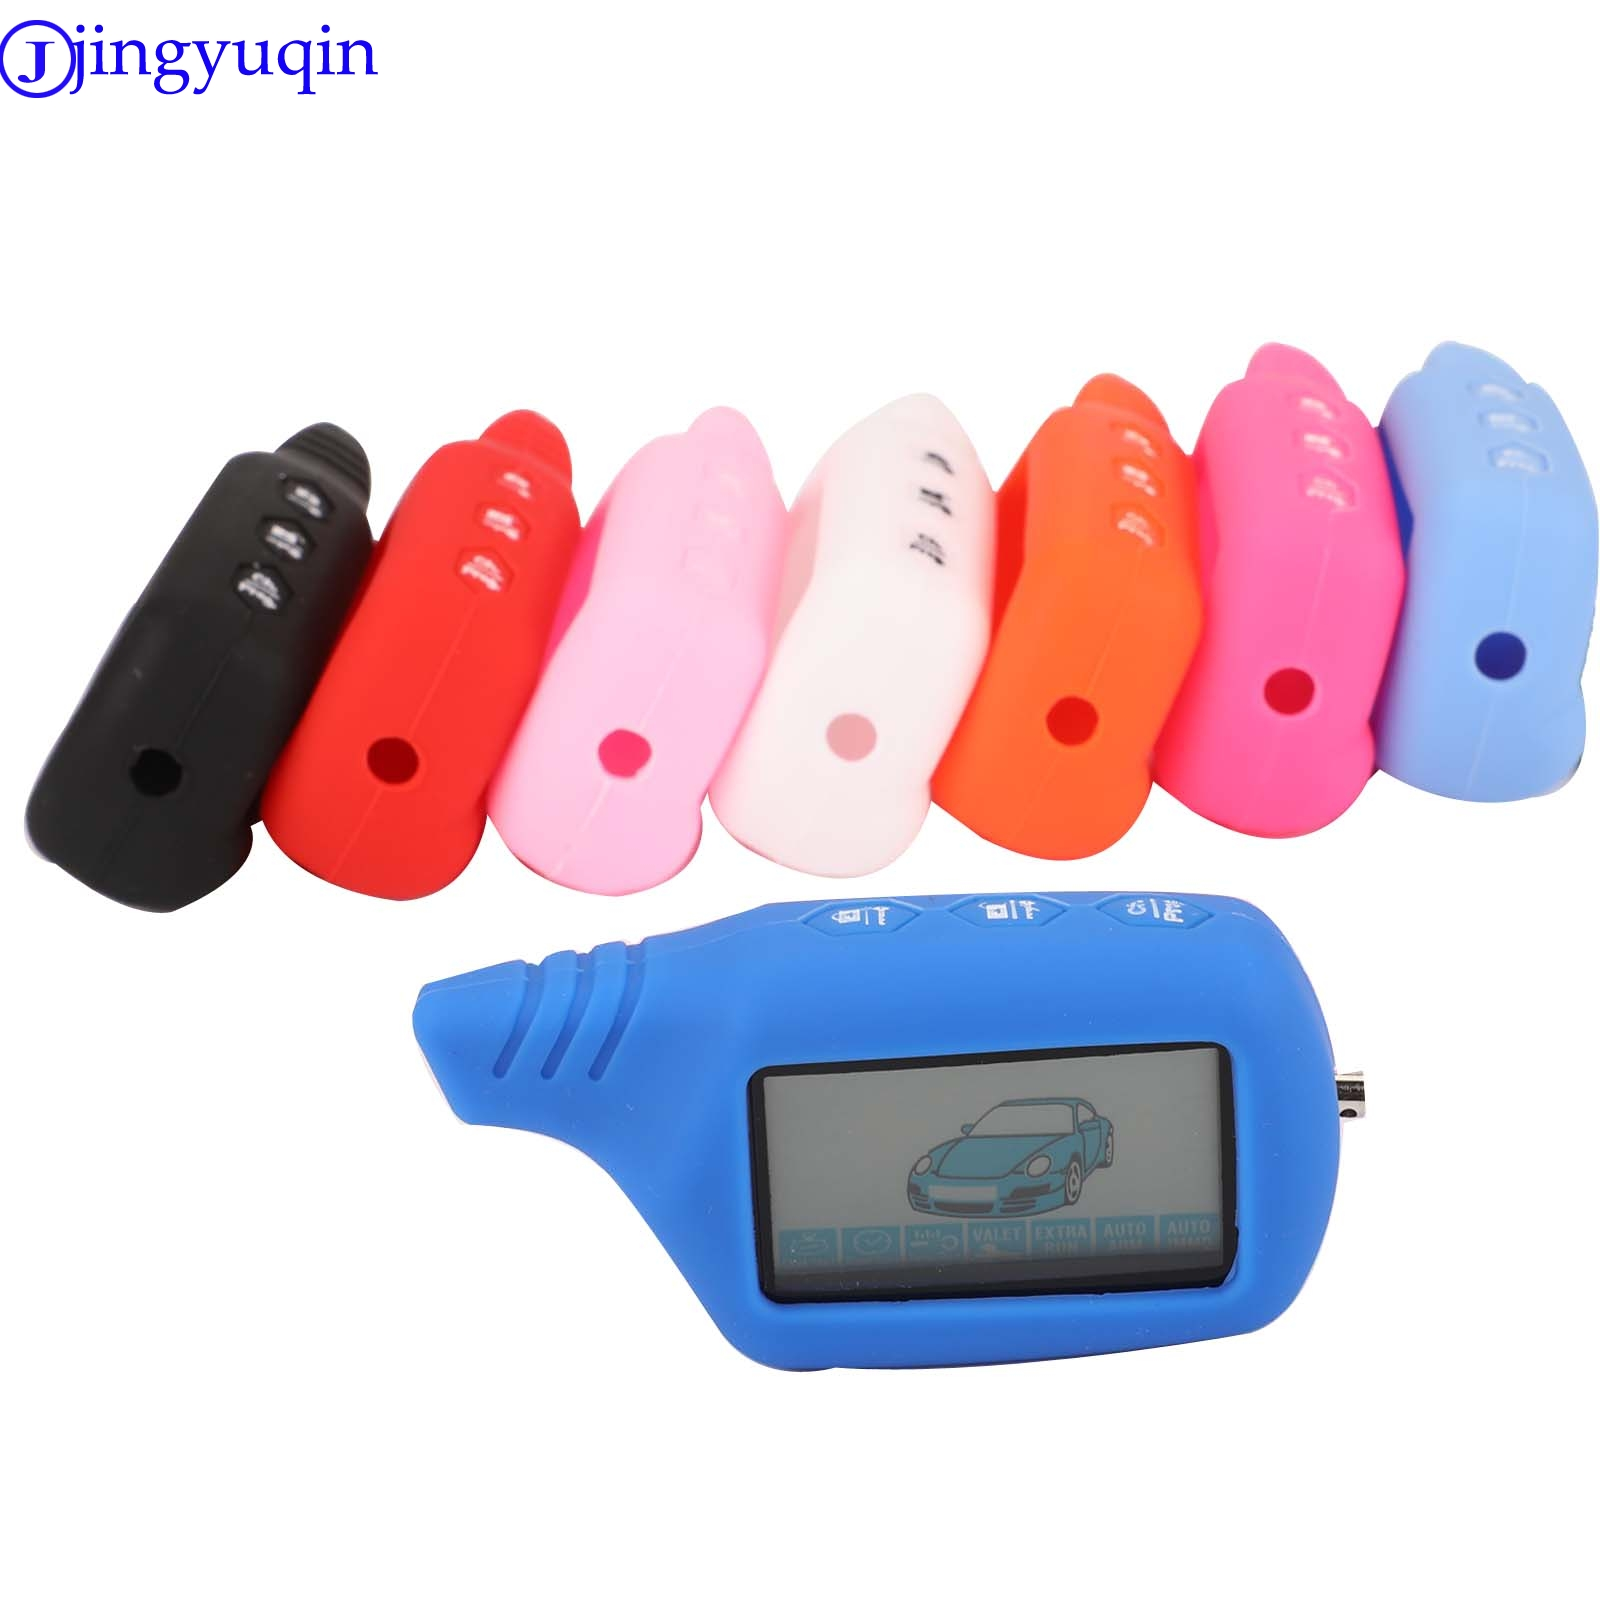 Jingyuqin Case-Cover Keychain Car-Remote-Alarm-System Silicone For Original A61/V7 LCD